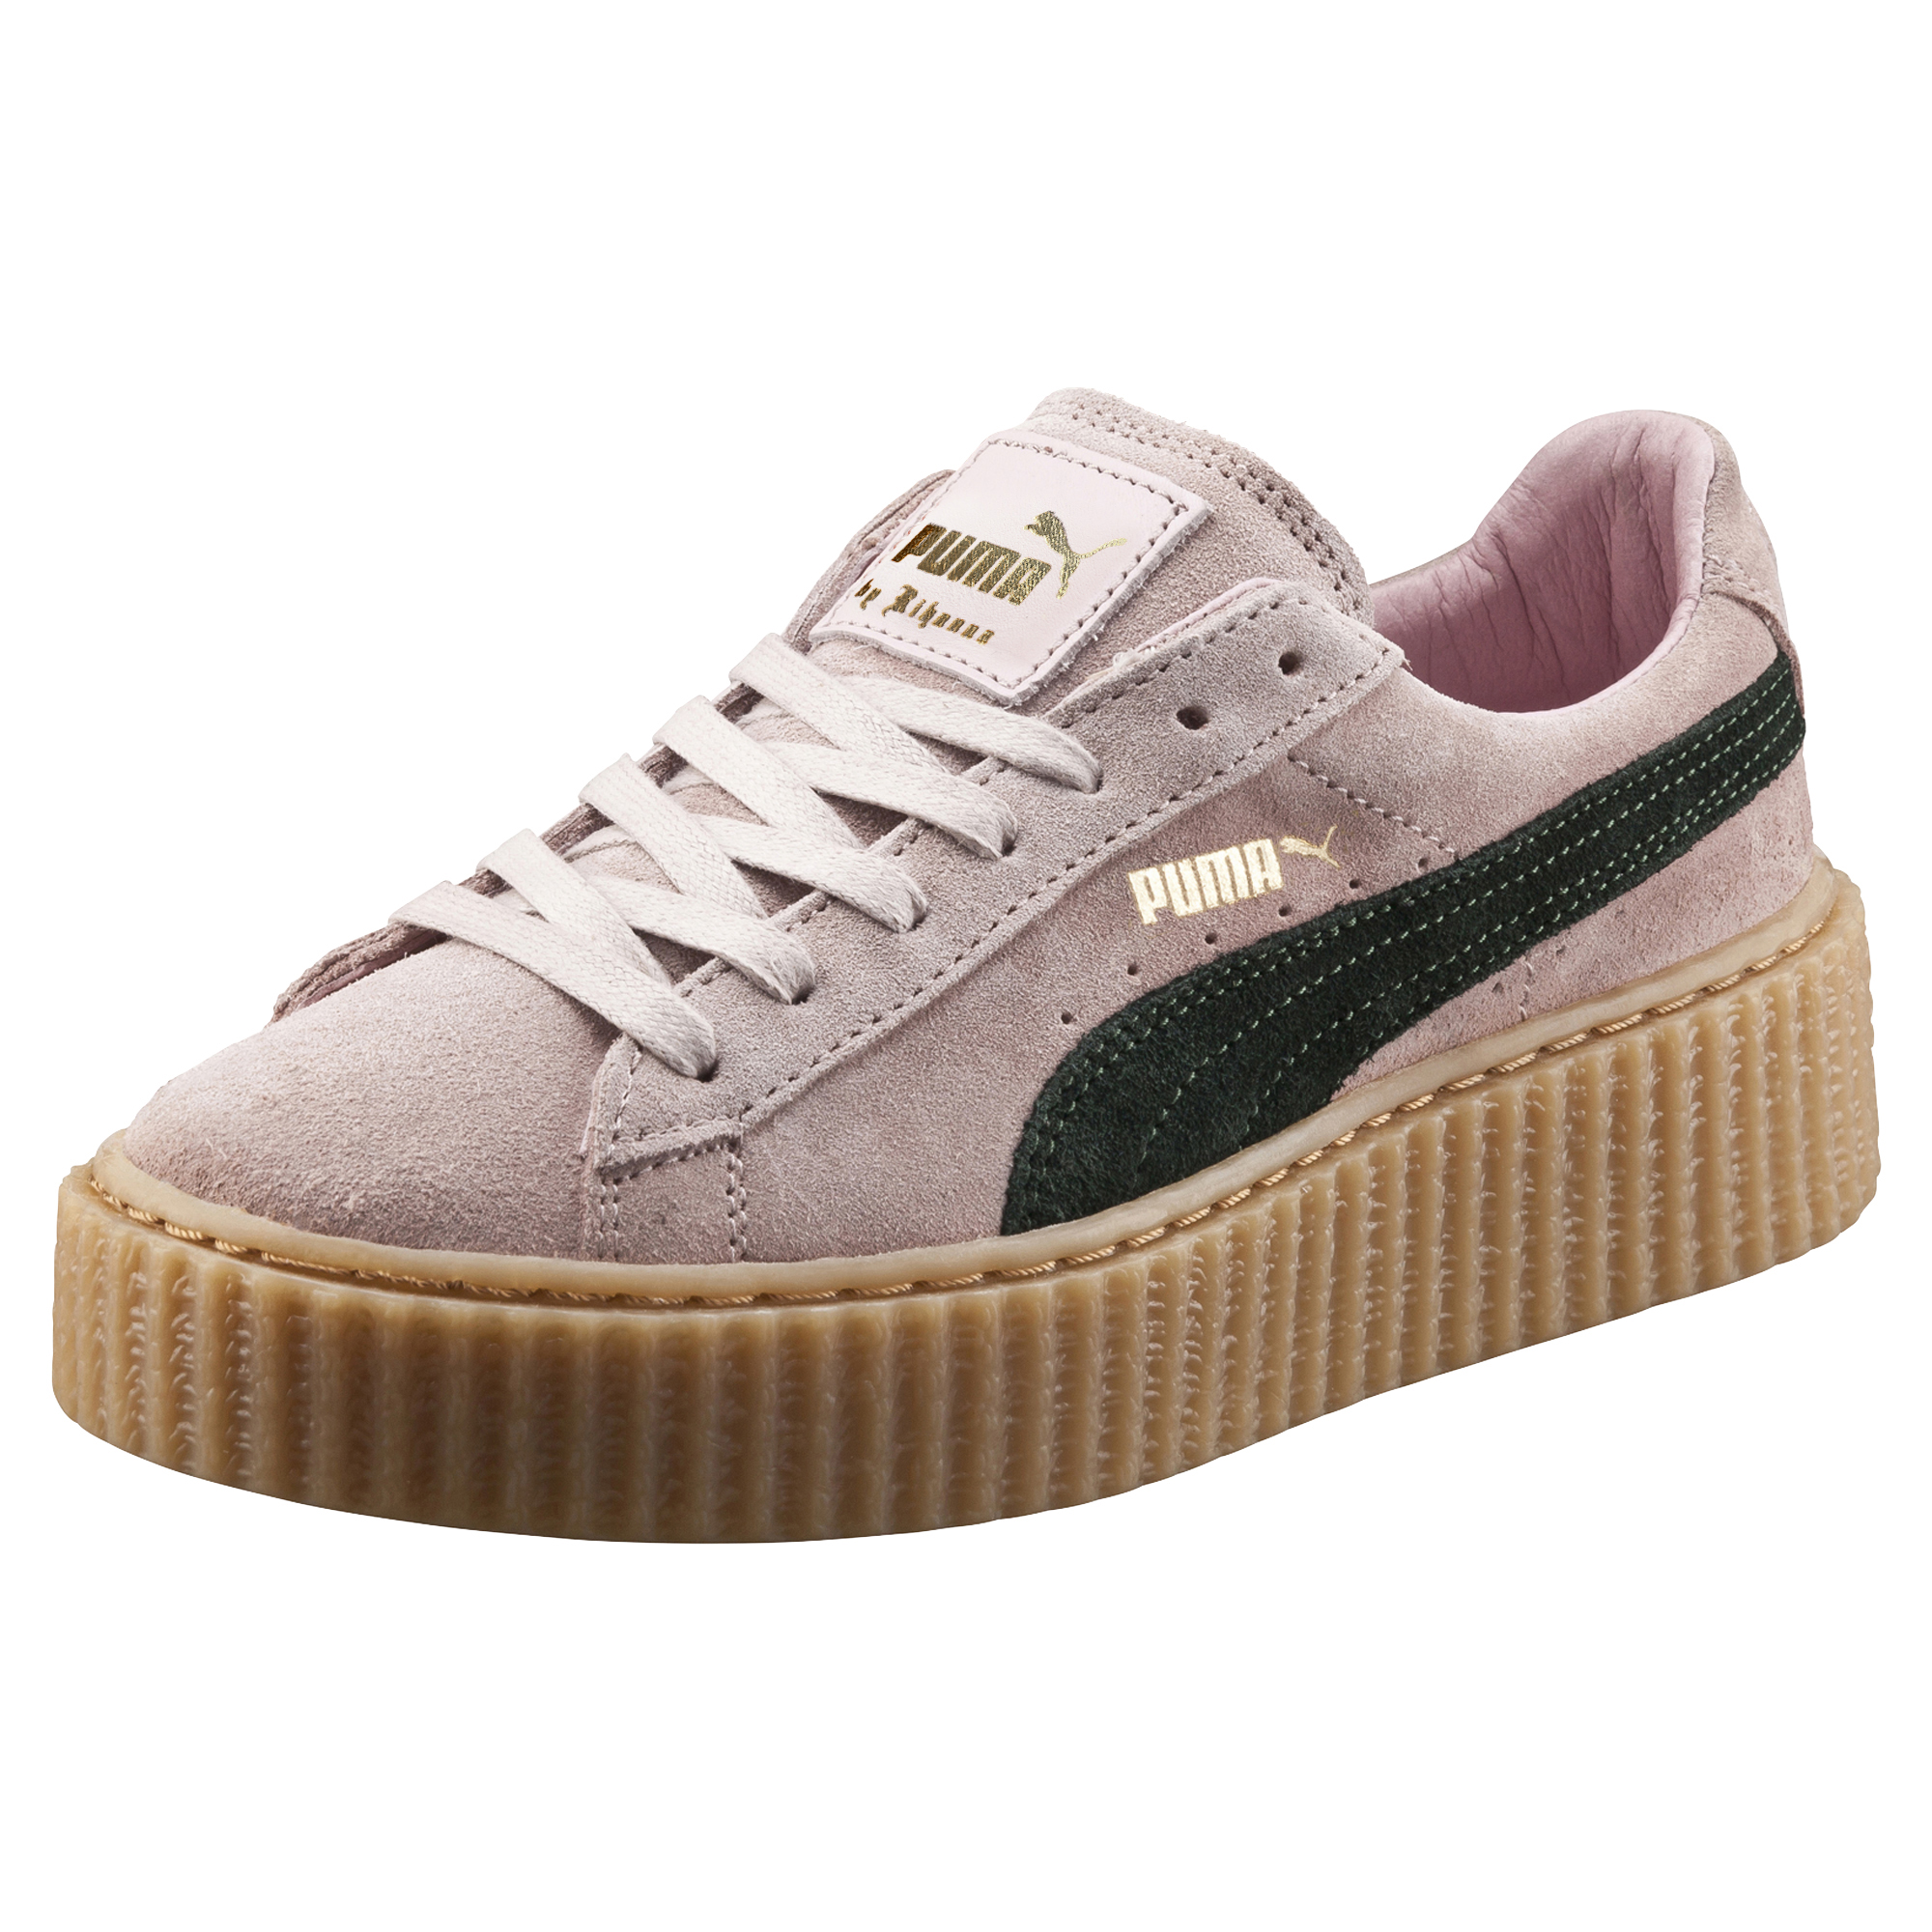 Get Your Hands On PUMA by Rihanna Colourways  3cc6007d0